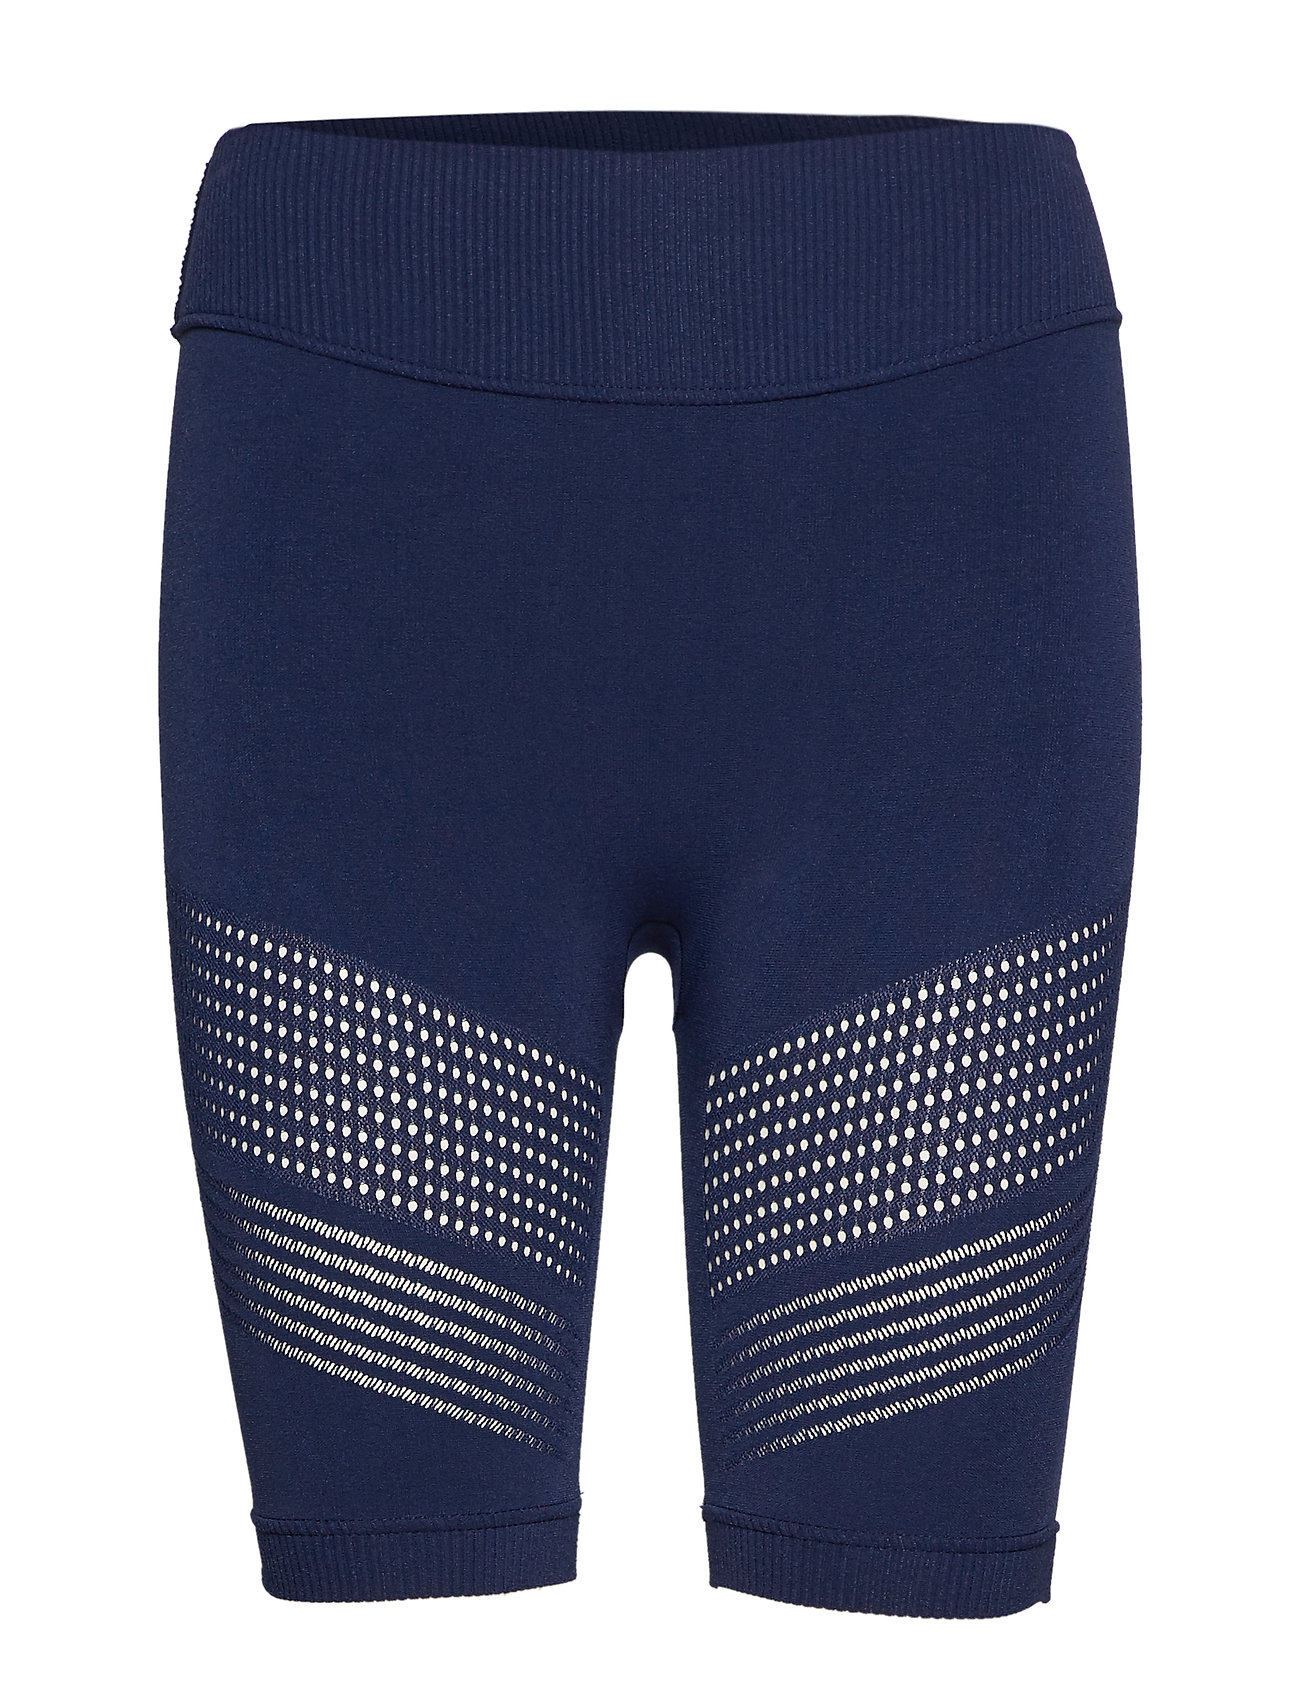 Skins DNAmic Seamless Square Womens Shorts - HARBOUR